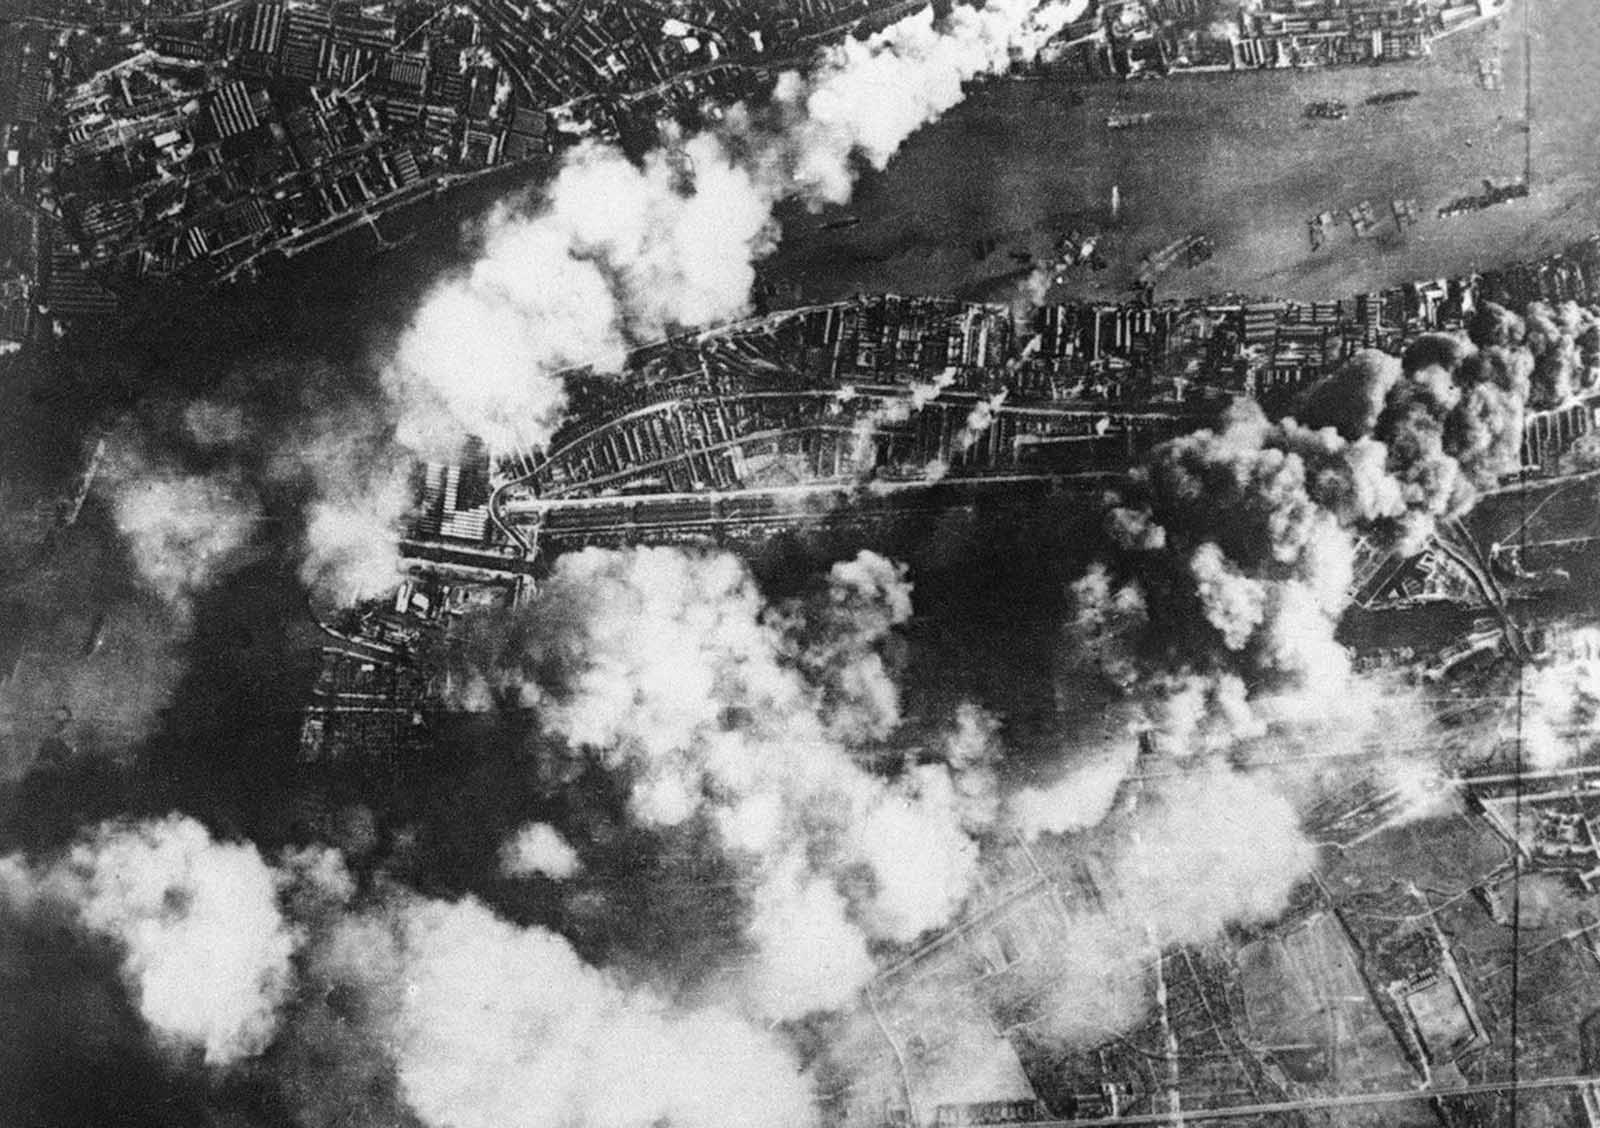 The effects of a large concentrated attack by the German Luftwaffe, on London dock and industry districts, on September 7, 1940. Factories and storehouses were seriously damaged; the mills at the Victories Docks (below at left) show damage wrought by fire.